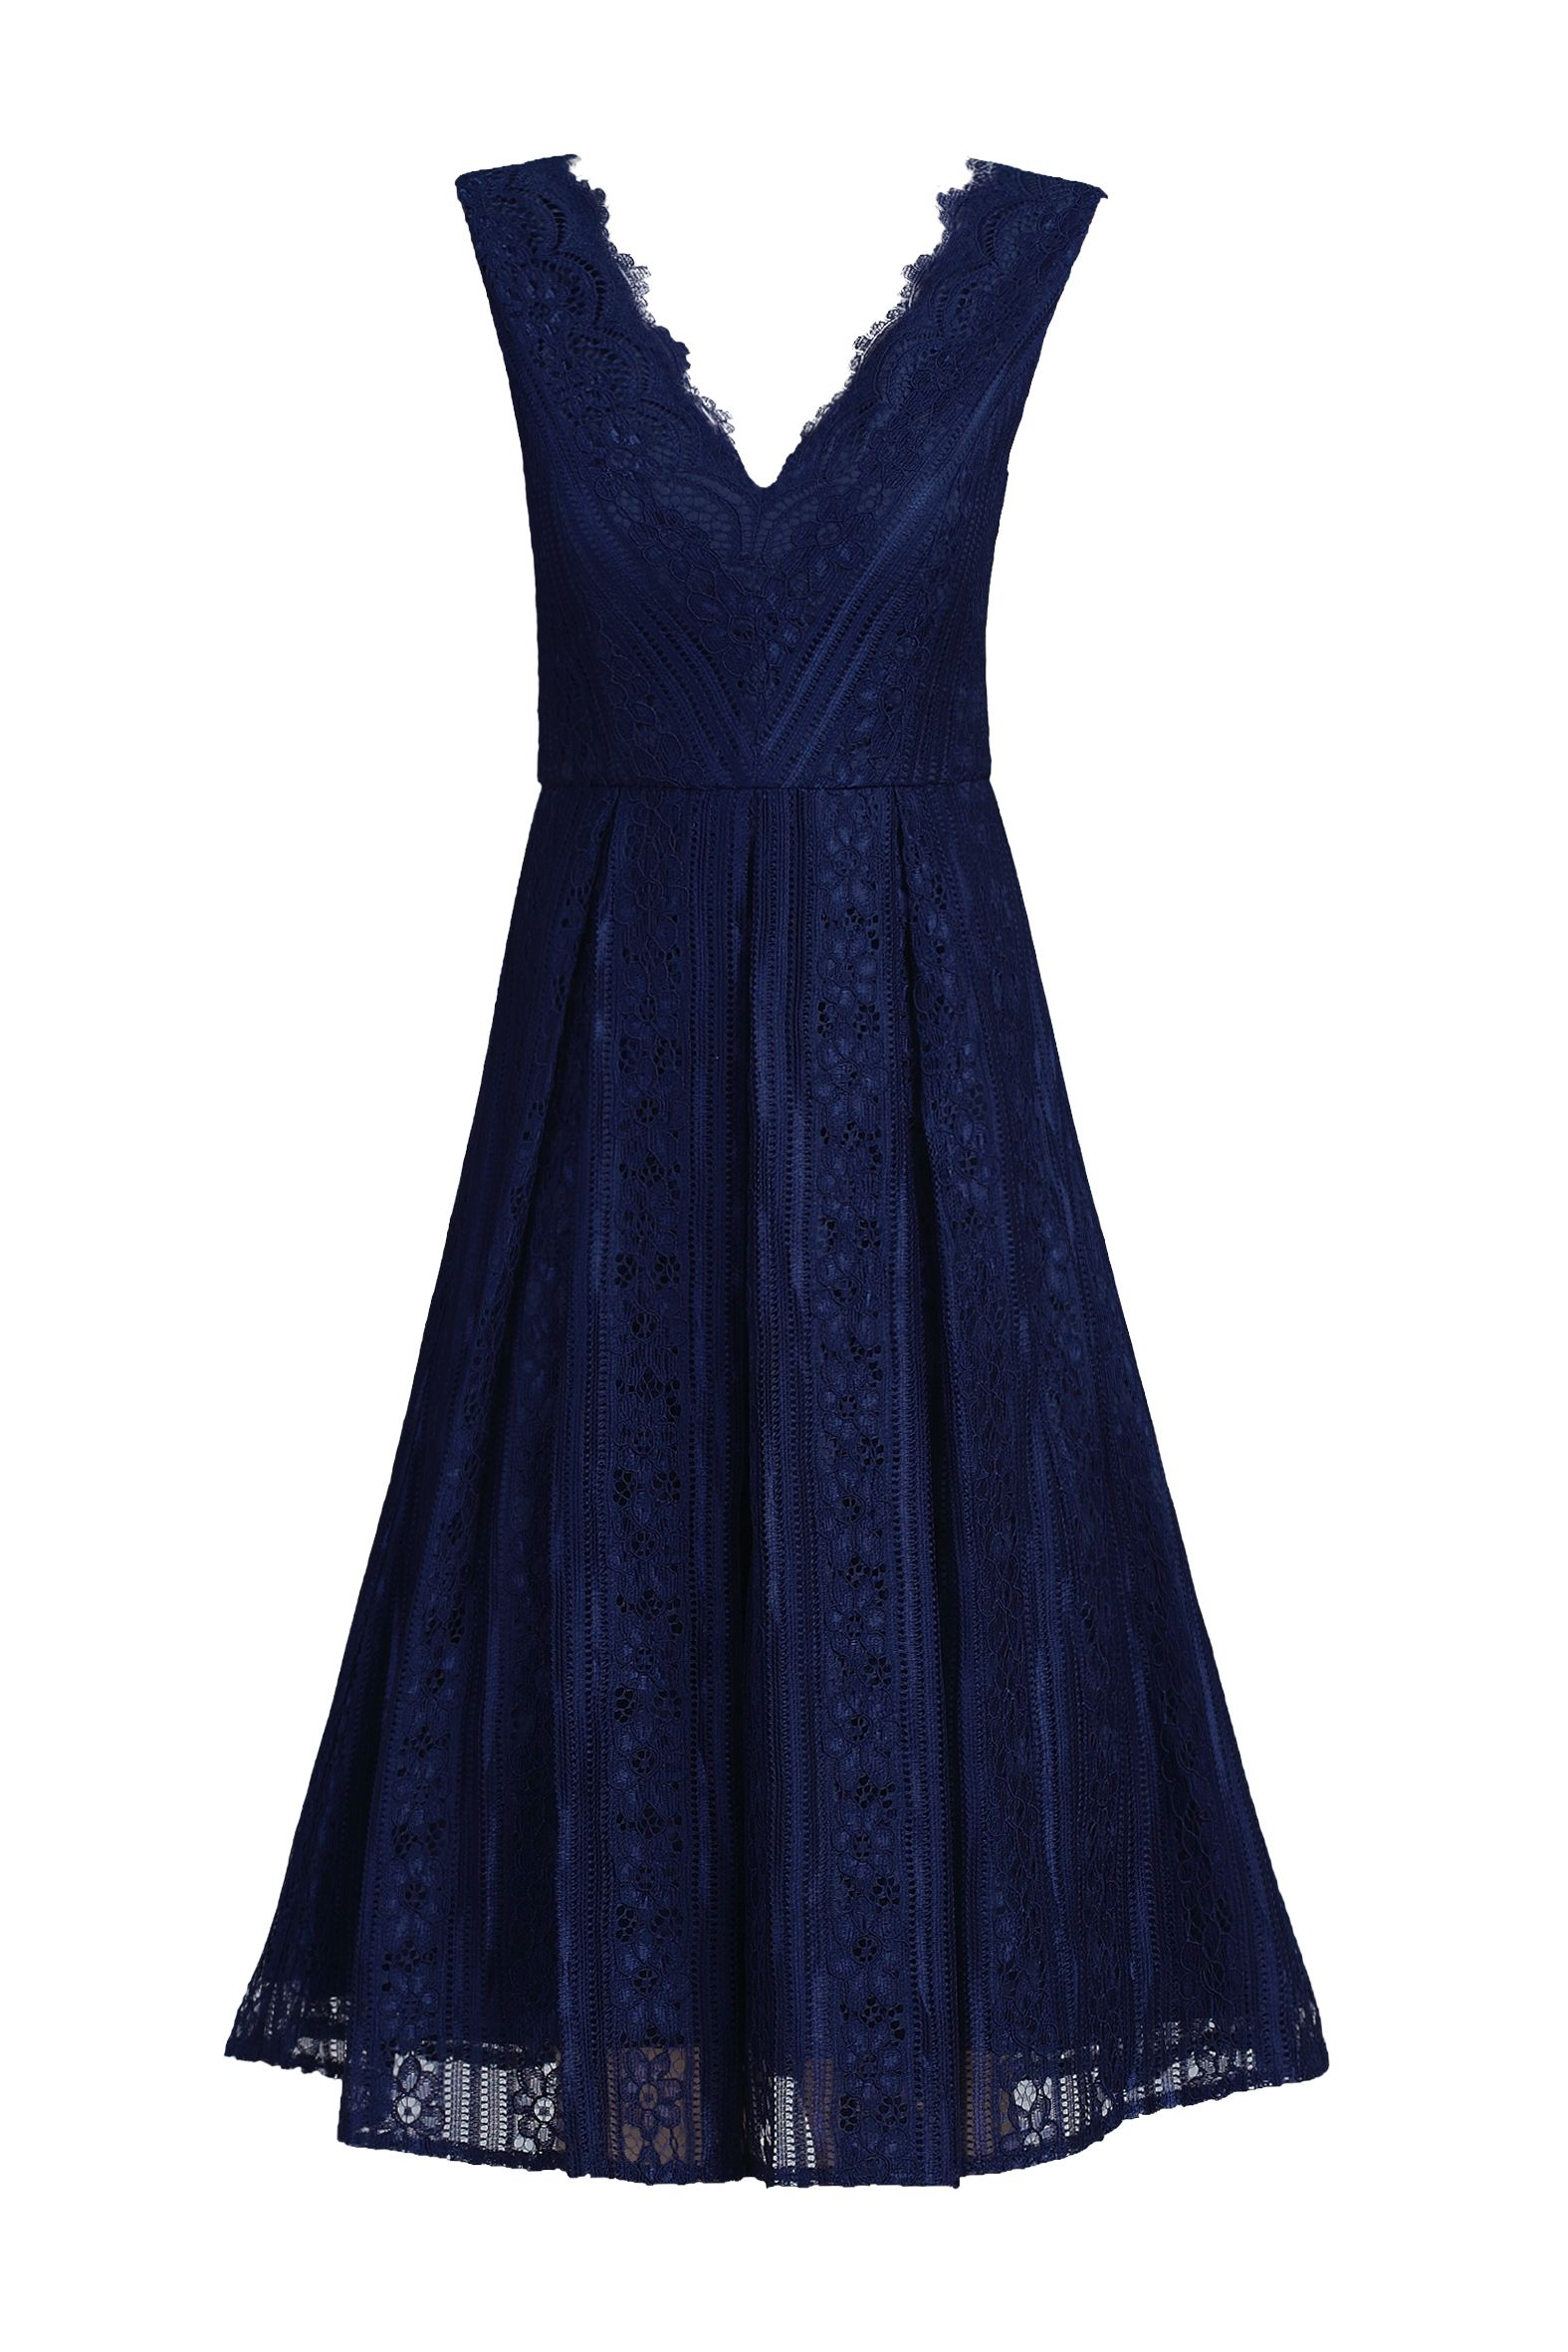 Jolie Moi Striped Pattern Lace Prom Dress, Blue